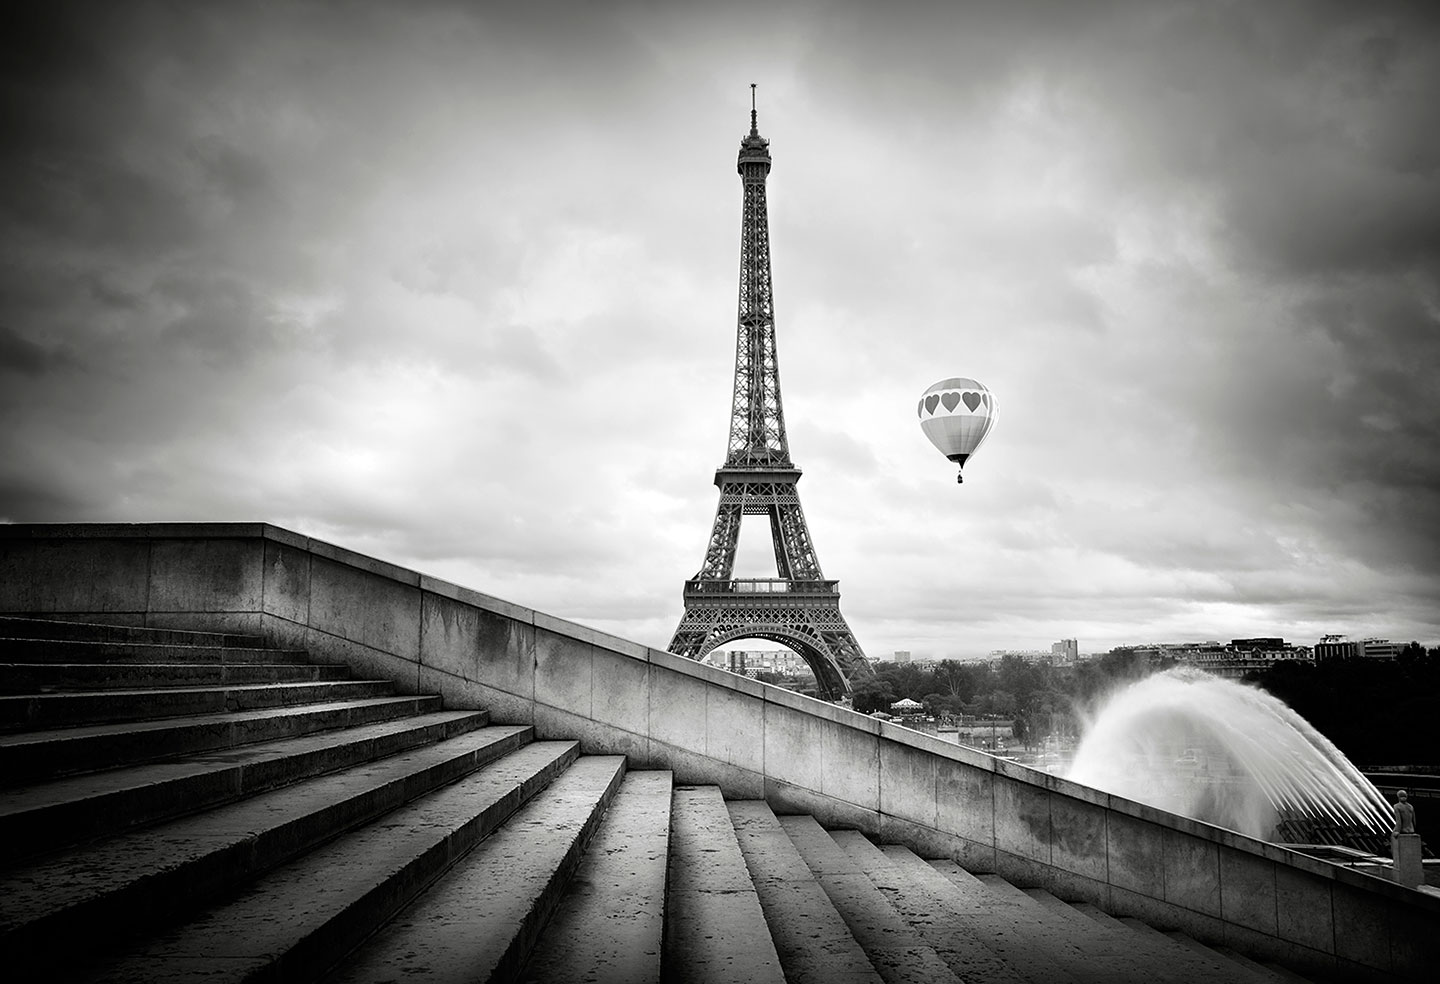 Hot air ballom and Eiffel Tower, Hot air ballom and Eiffel Tower Eiffel tower from Trocadero garden : Stock Photo      Comp     Embed     Share     Add to Board  Eiffel tower, from Trocadero garden